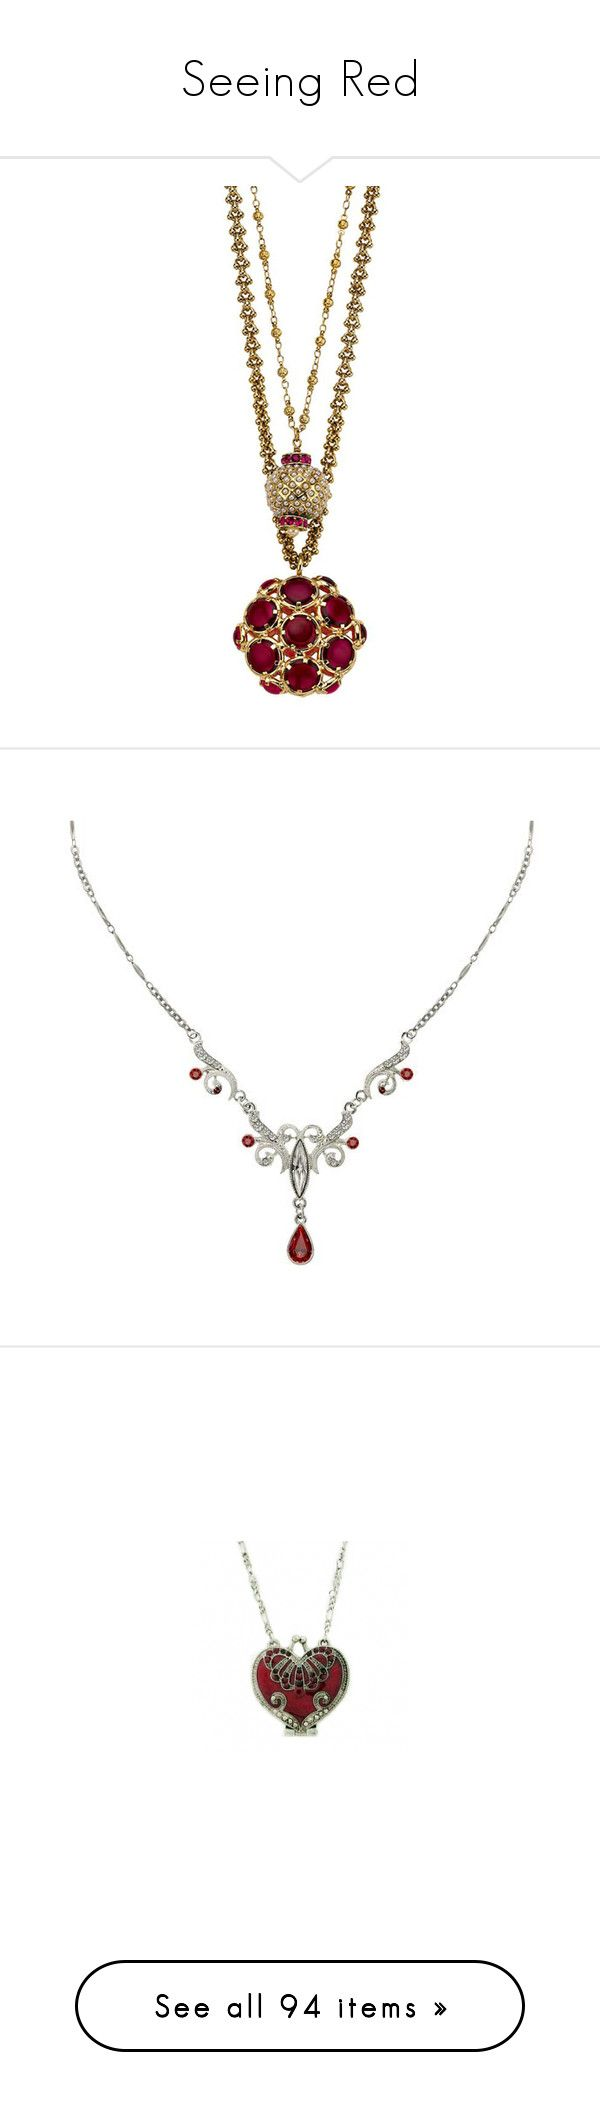 """""""Seeing Red"""" by thewolfsdance ❤ liked on Polyvore featuring jewelry, necklaces, accessories, women, mawi, pendant jewelry, bubble jewelry, ruby pendant necklace, mawi jewelry and colares"""